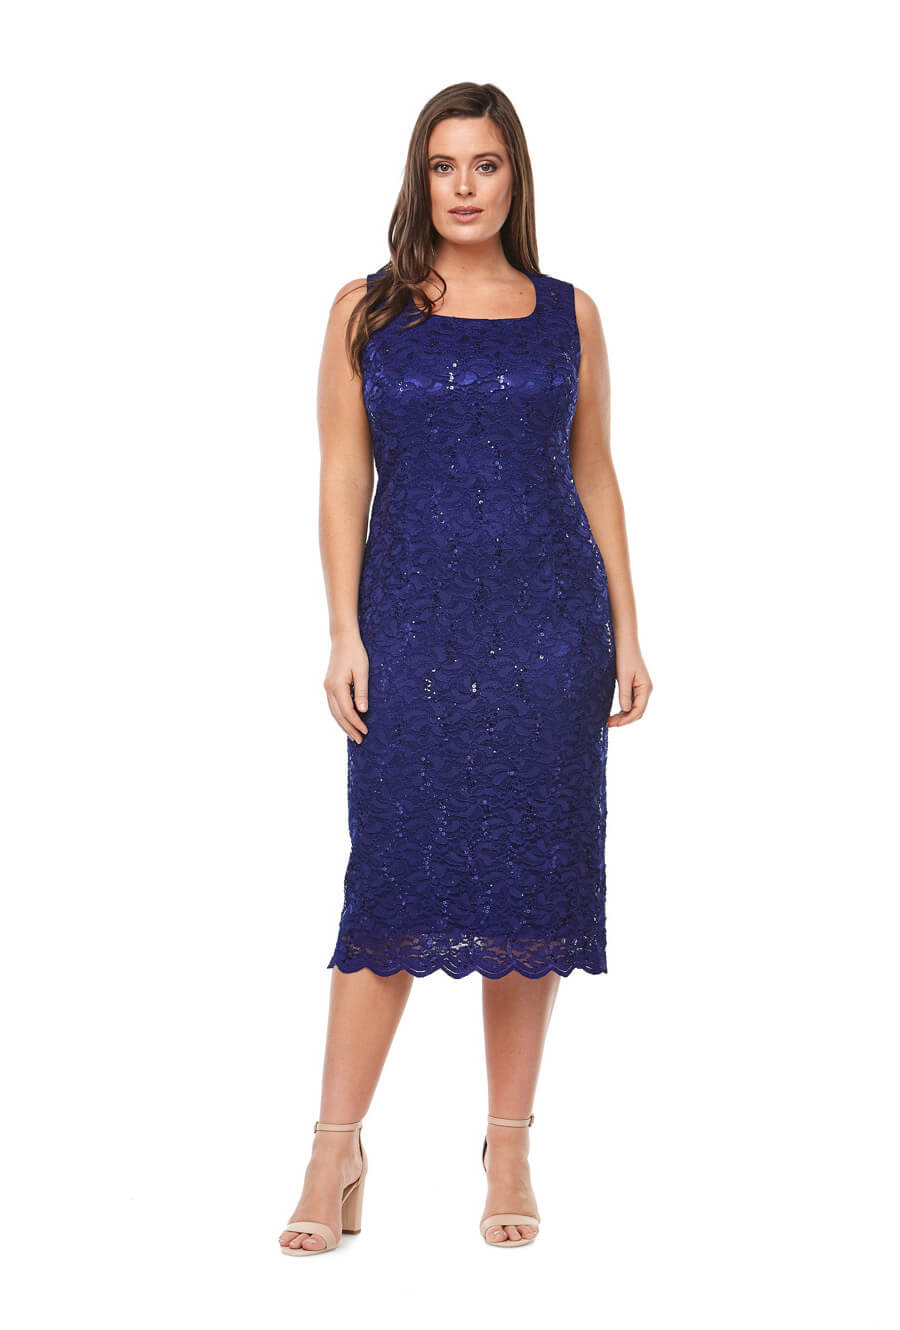 Mid length embroidered sequin dress with scallop hem & matching tailored jacket with 3/4 bell sleeves